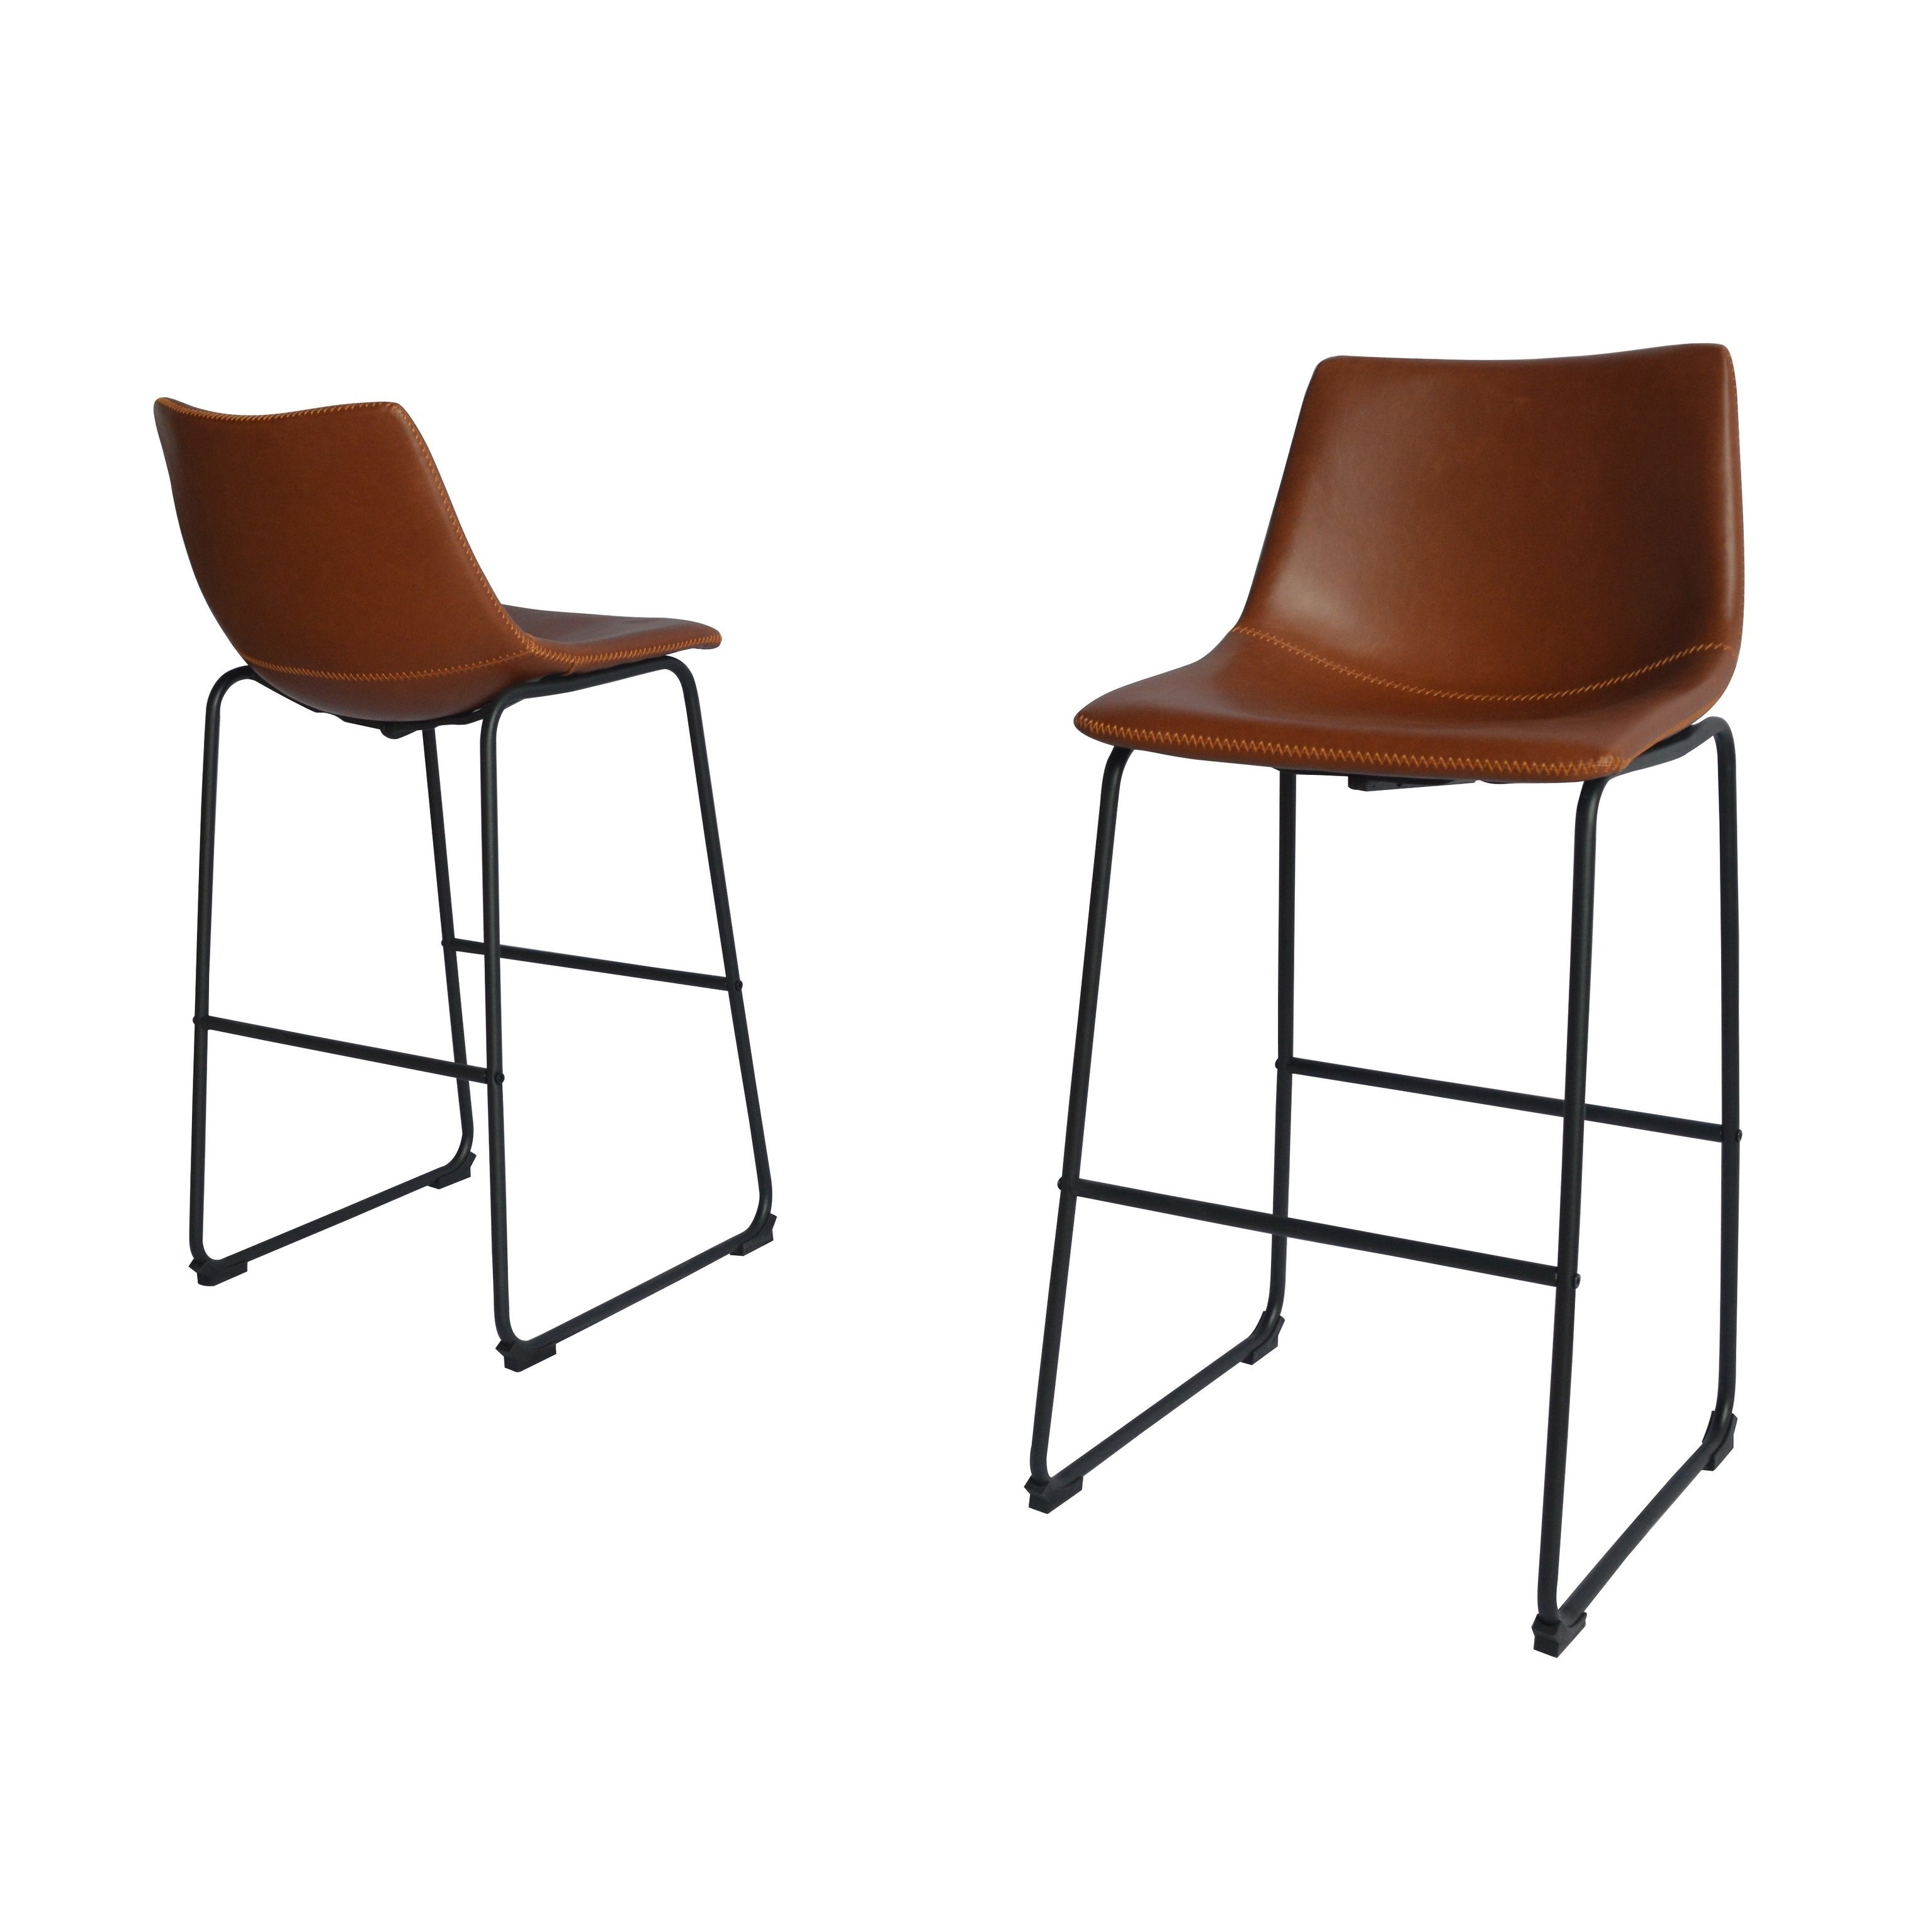 Sensational Best Quality Furniture Modern 29 Inch Faux Leather Bar Stool Set Of 2 Evergreenethics Interior Chair Design Evergreenethicsorg